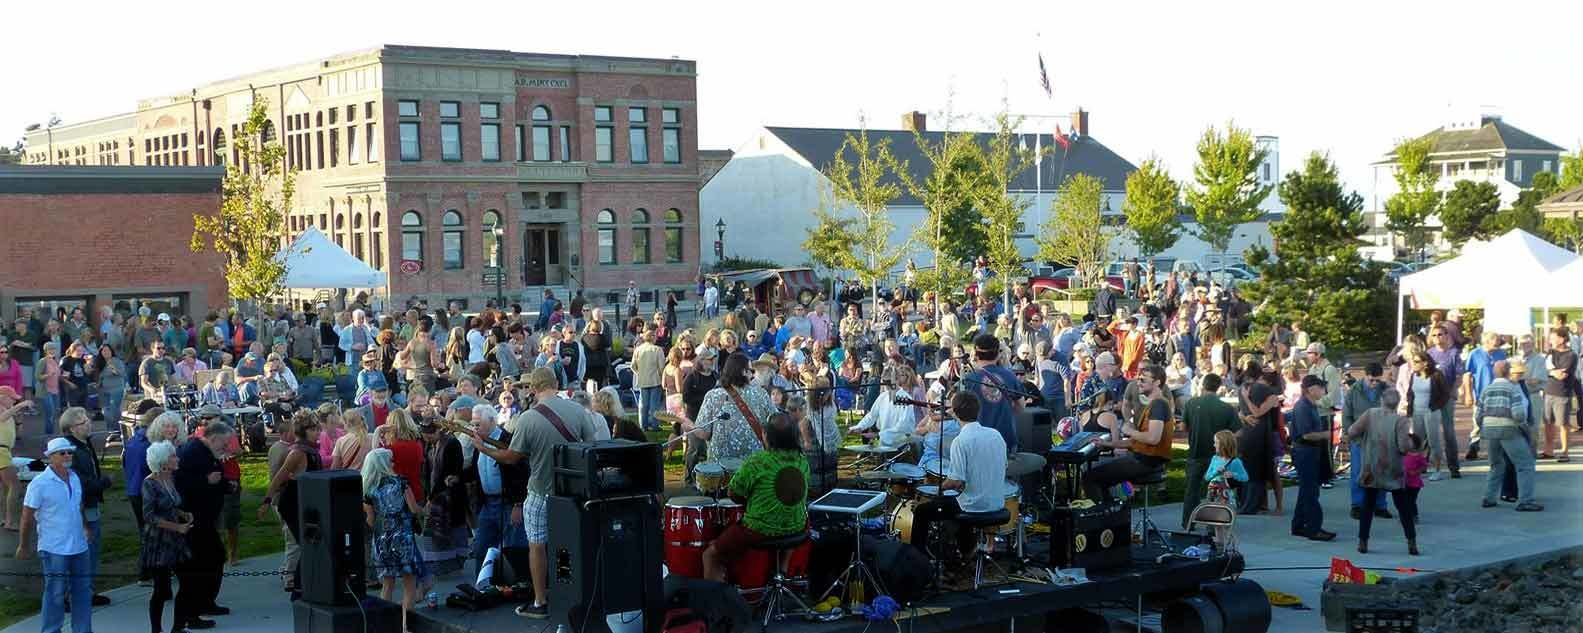 concerts-on-the-dock-by-mike-carroll